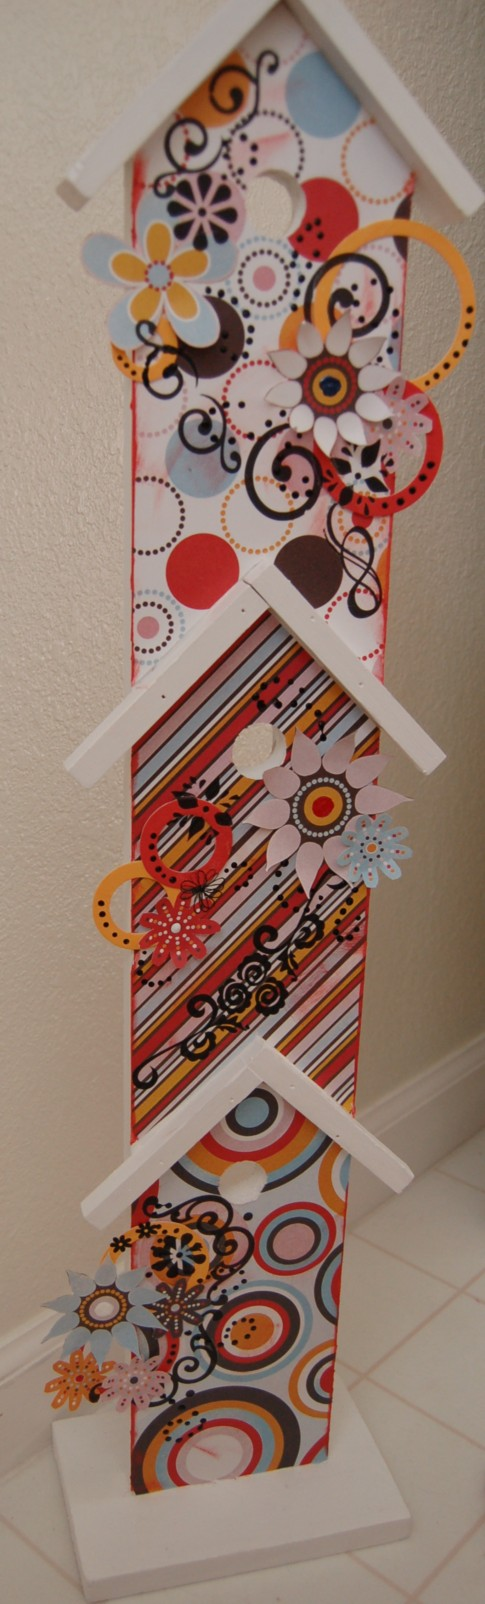 Close up of Gin-X birdhouse